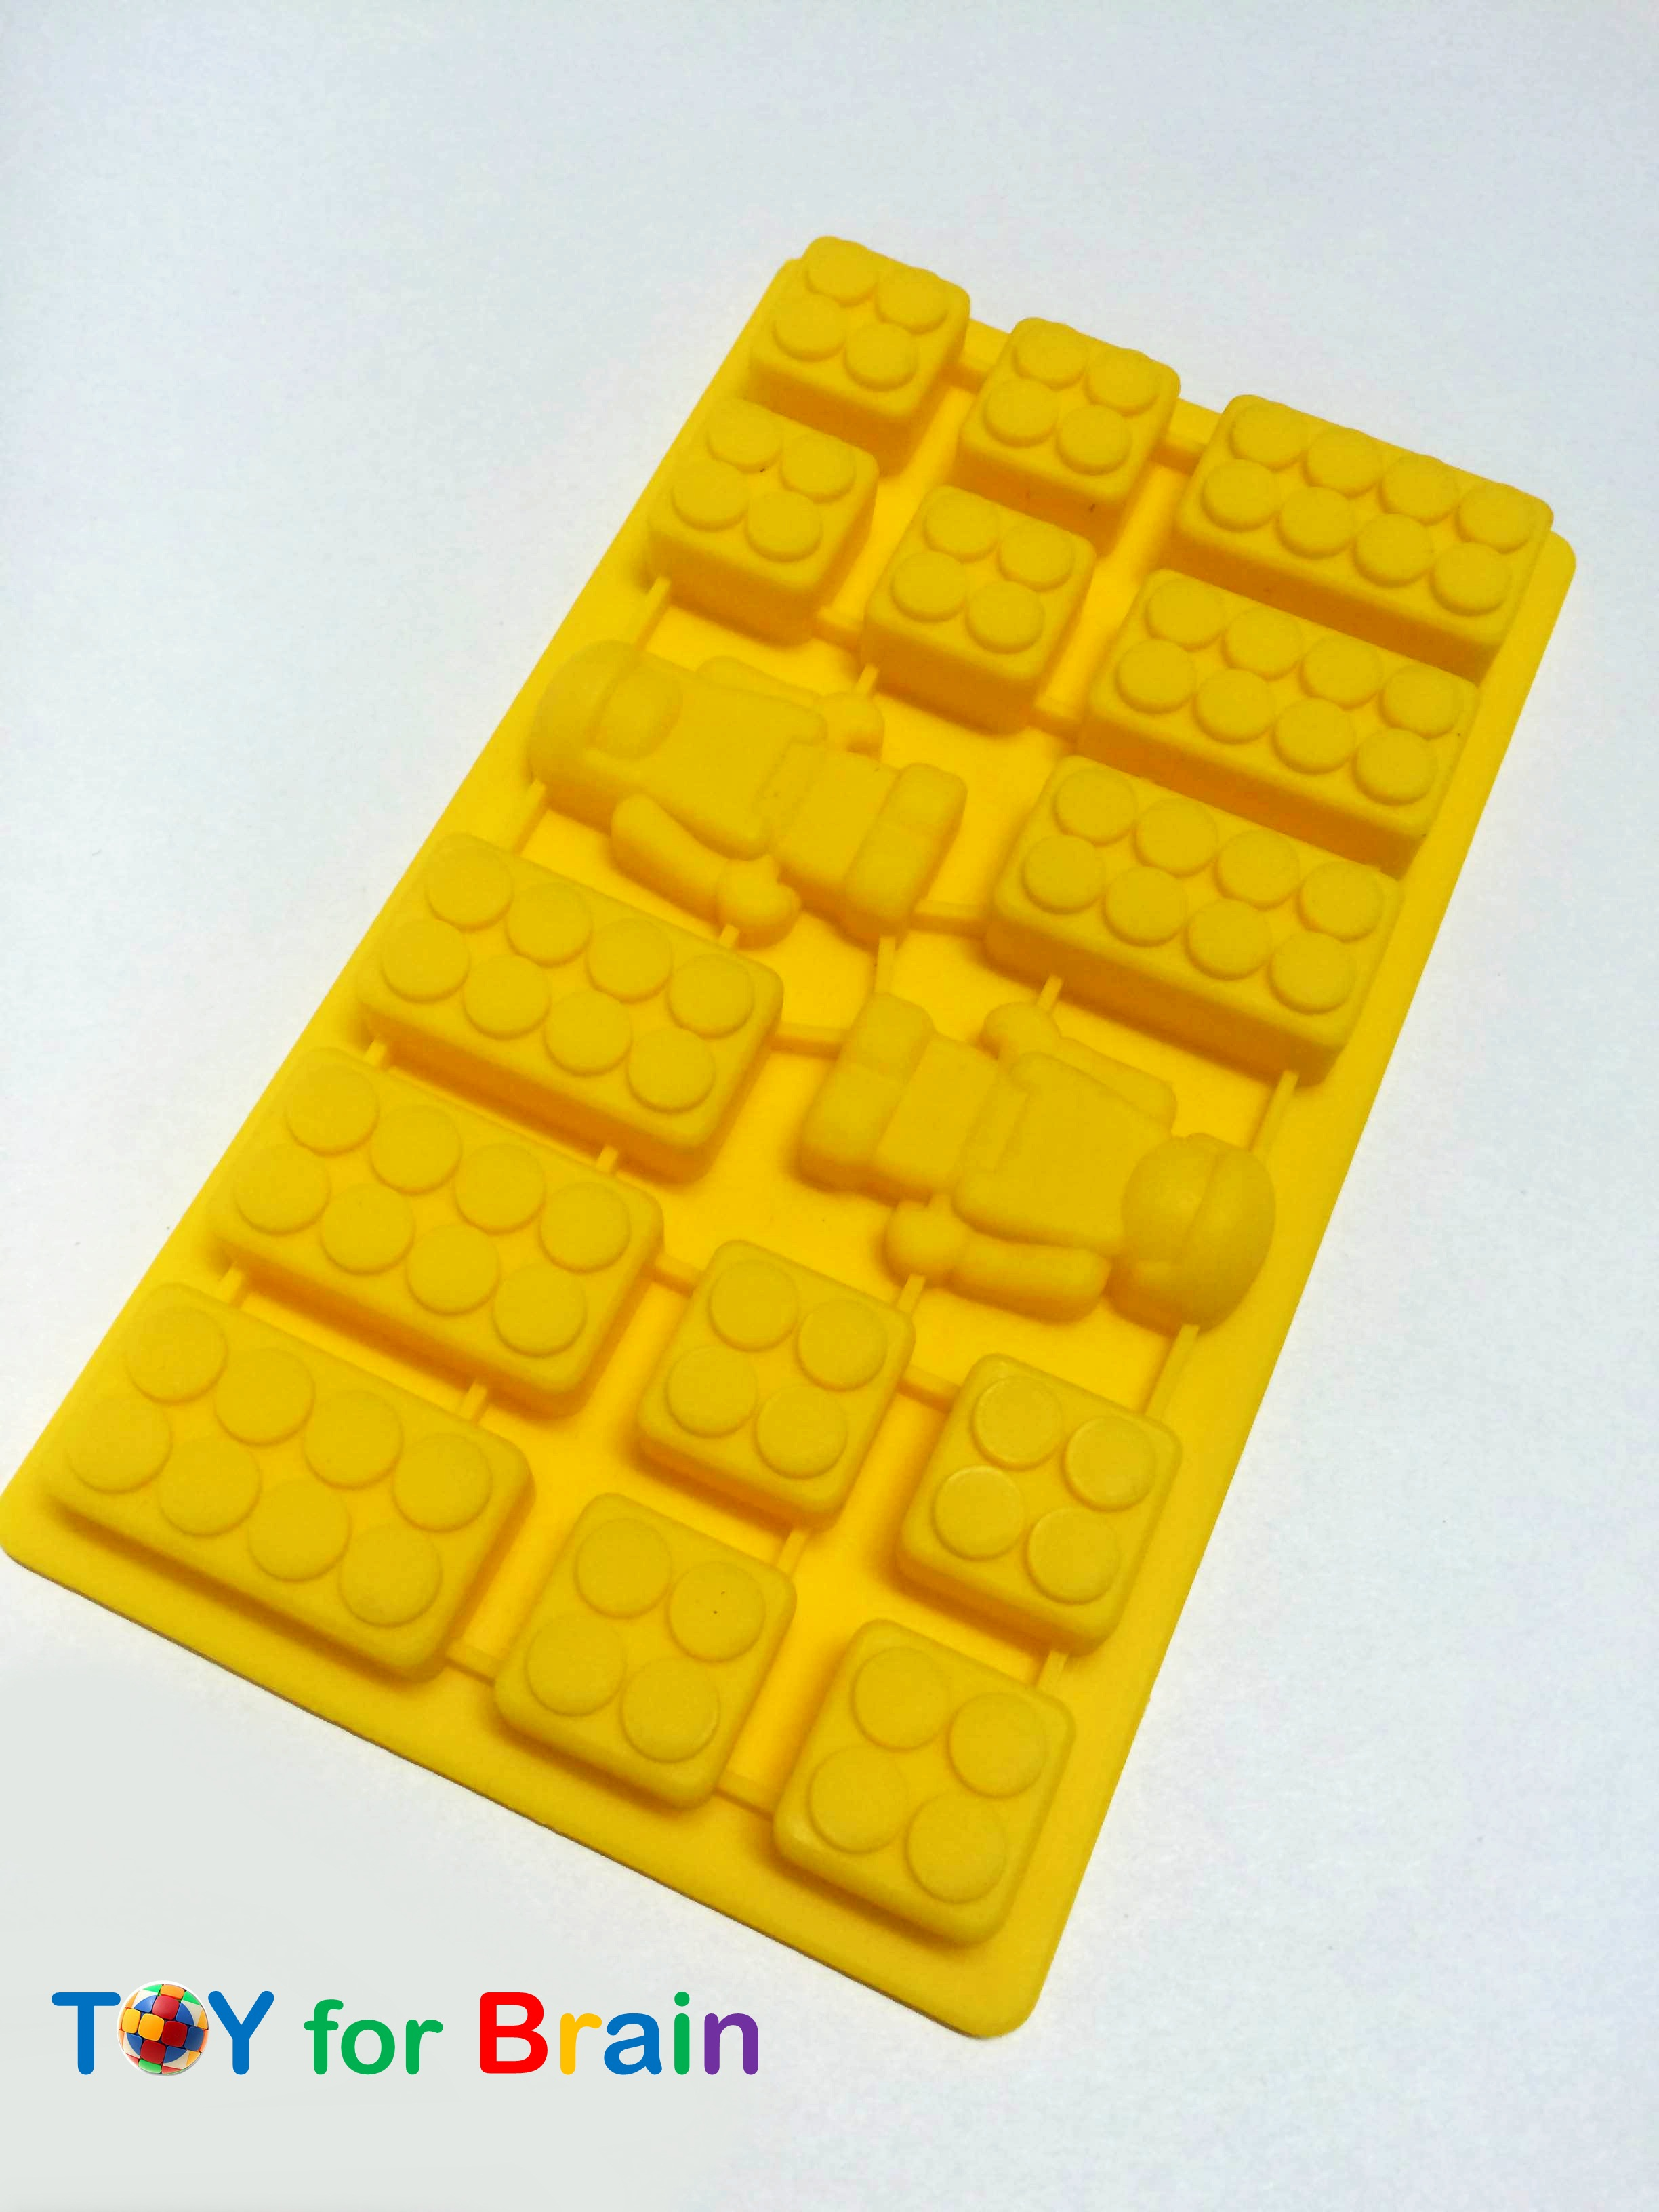 Lego Bricks Robot Mini Man Combination Silicone Ice Tray เหลือง